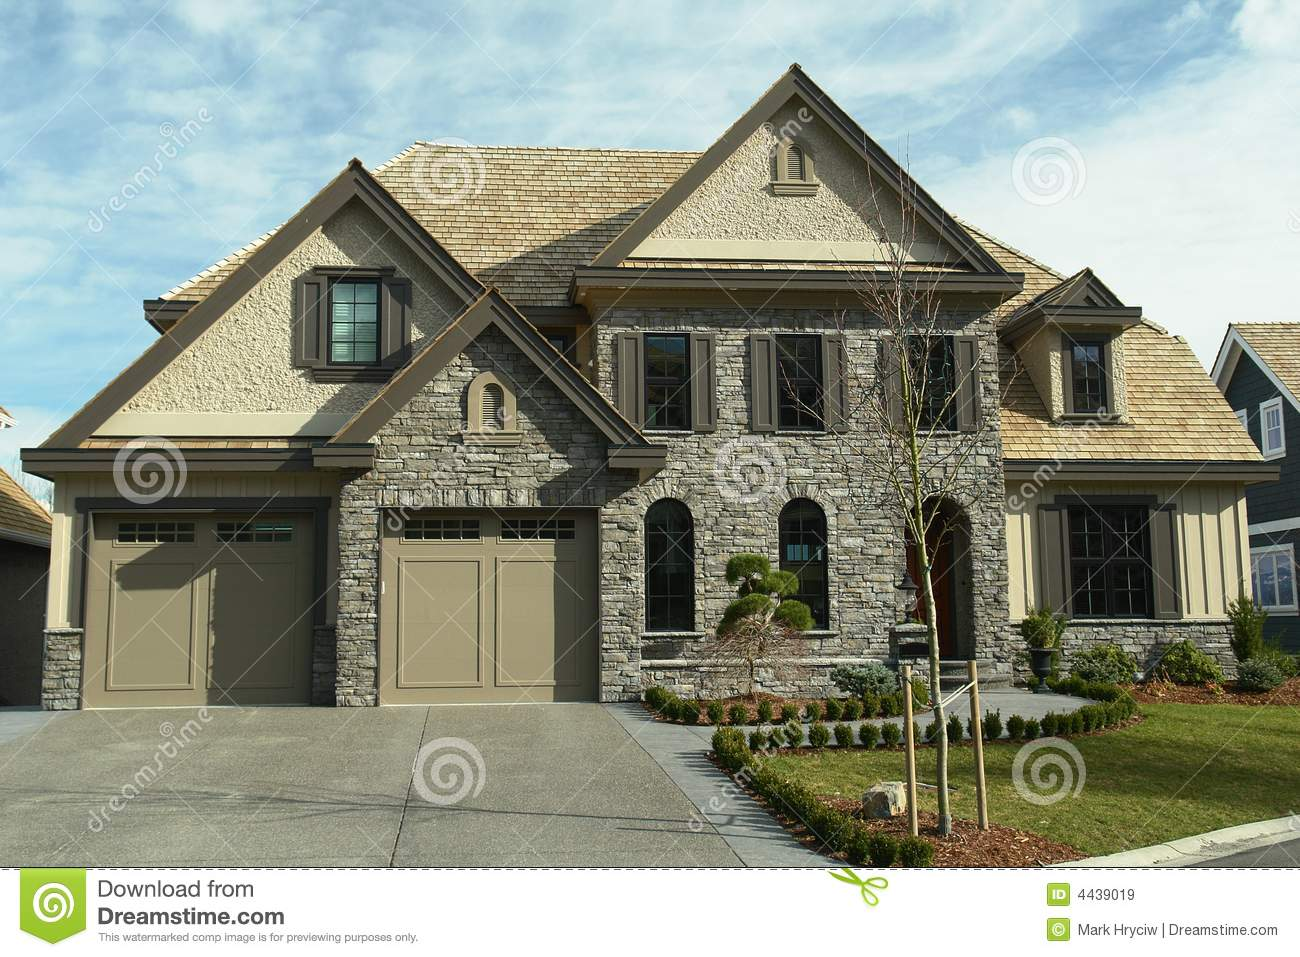 Large home house design bc royalty free stock images for Big house design ideas